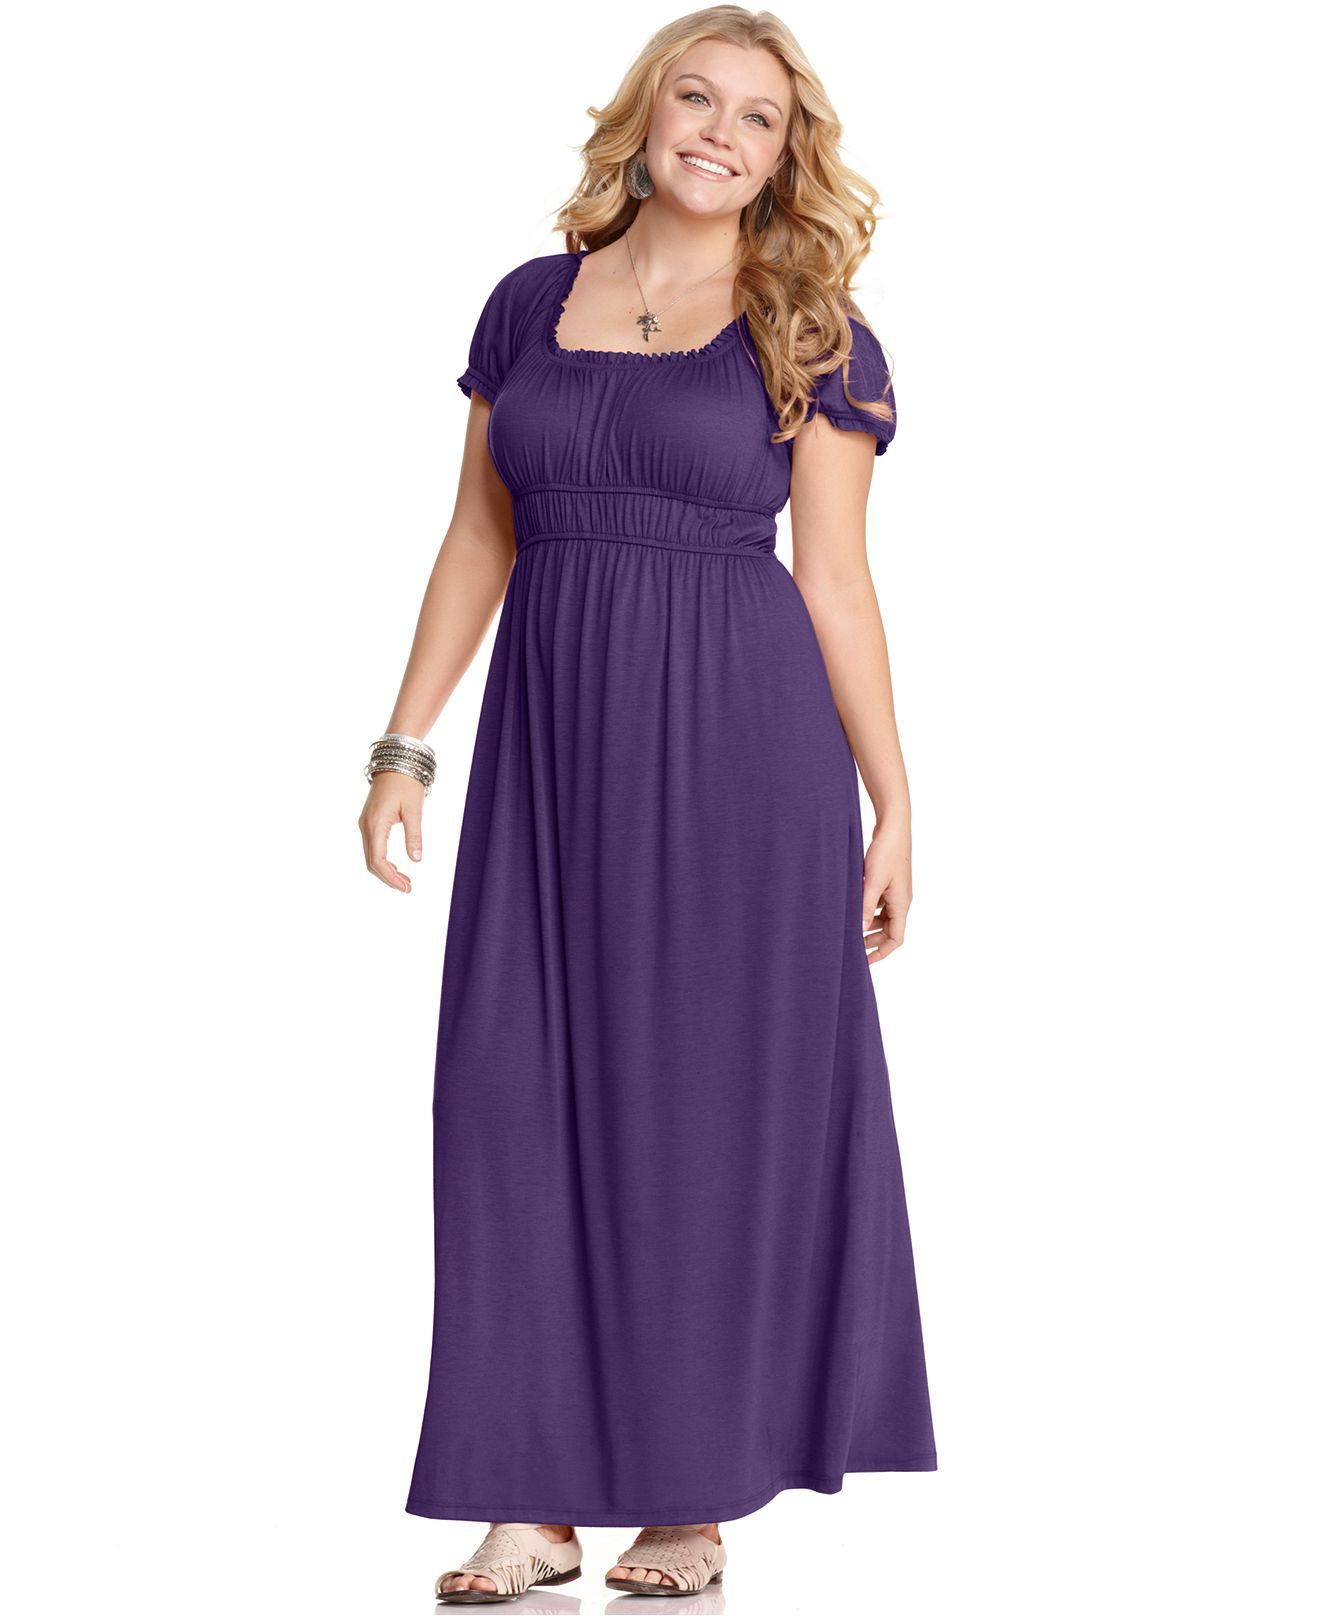 Love Squared Plus Size Dress, Short Sleeve Empire Maxi - Plus Size ...